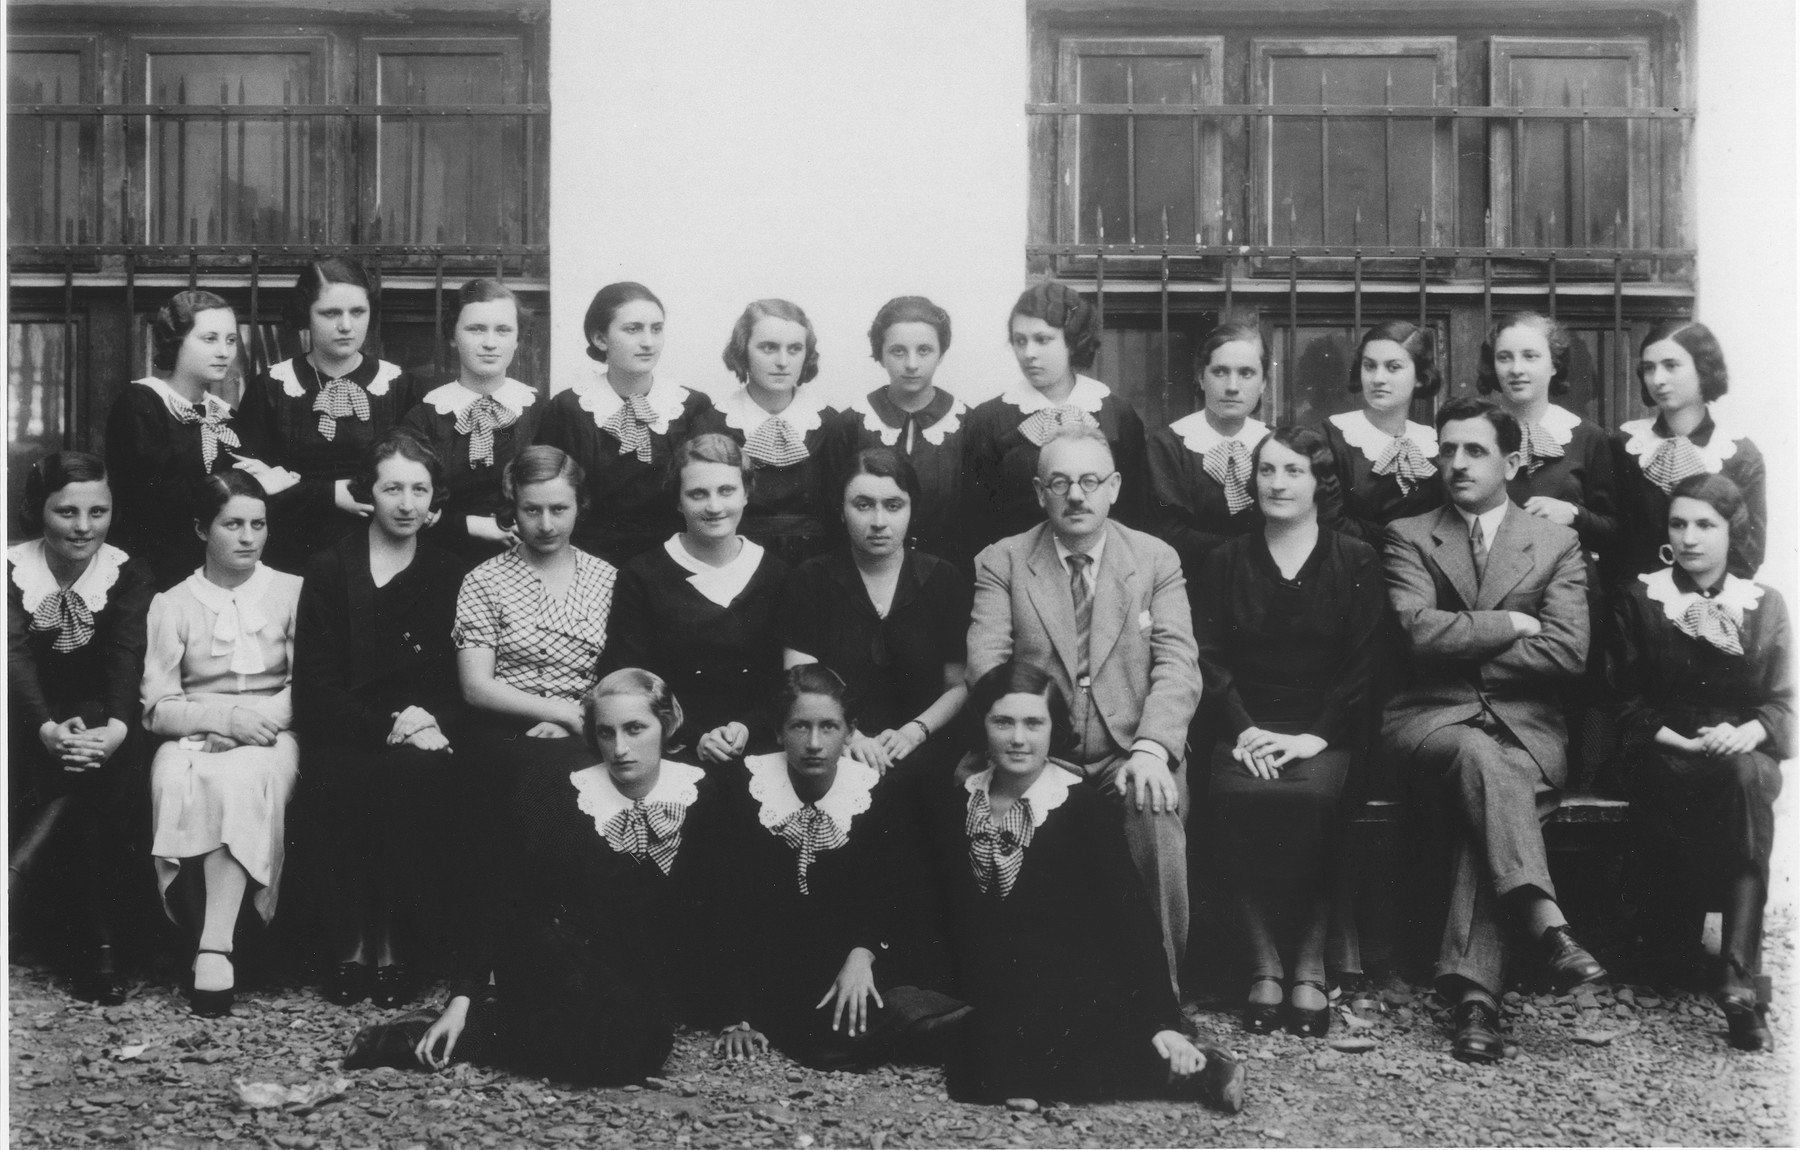 Lotte Gottfried (front row, left) with her classmates at the Hoffman gymnasium in Czernowitz.    Also pictured is Professor Theodor Kern (second row, fourth from the right).